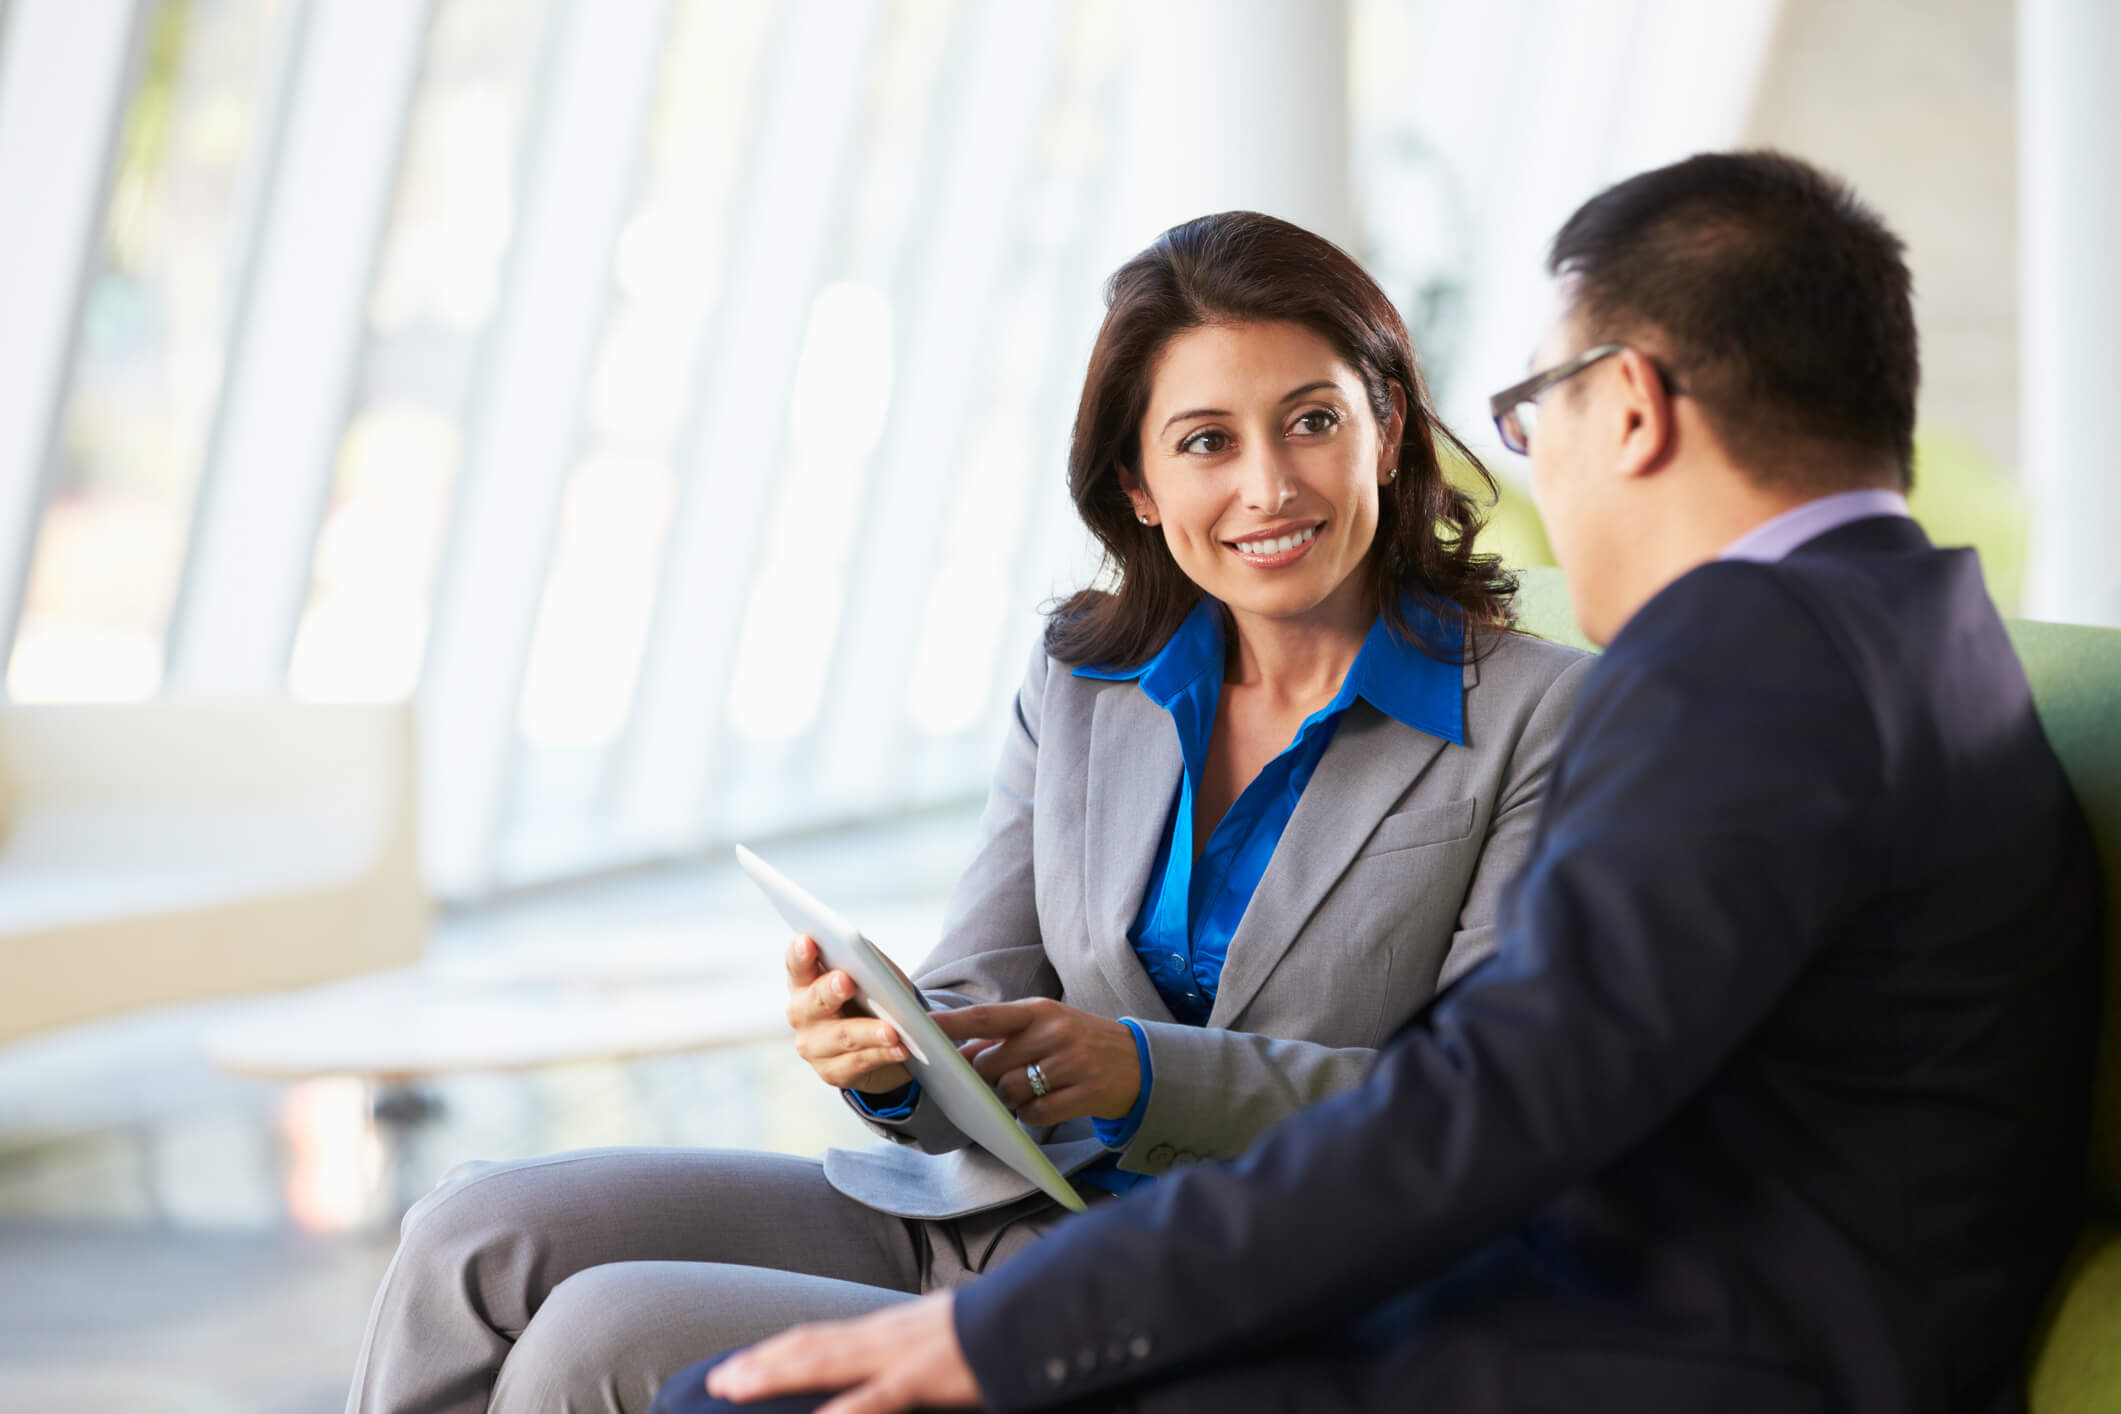 HR Solutions Experts